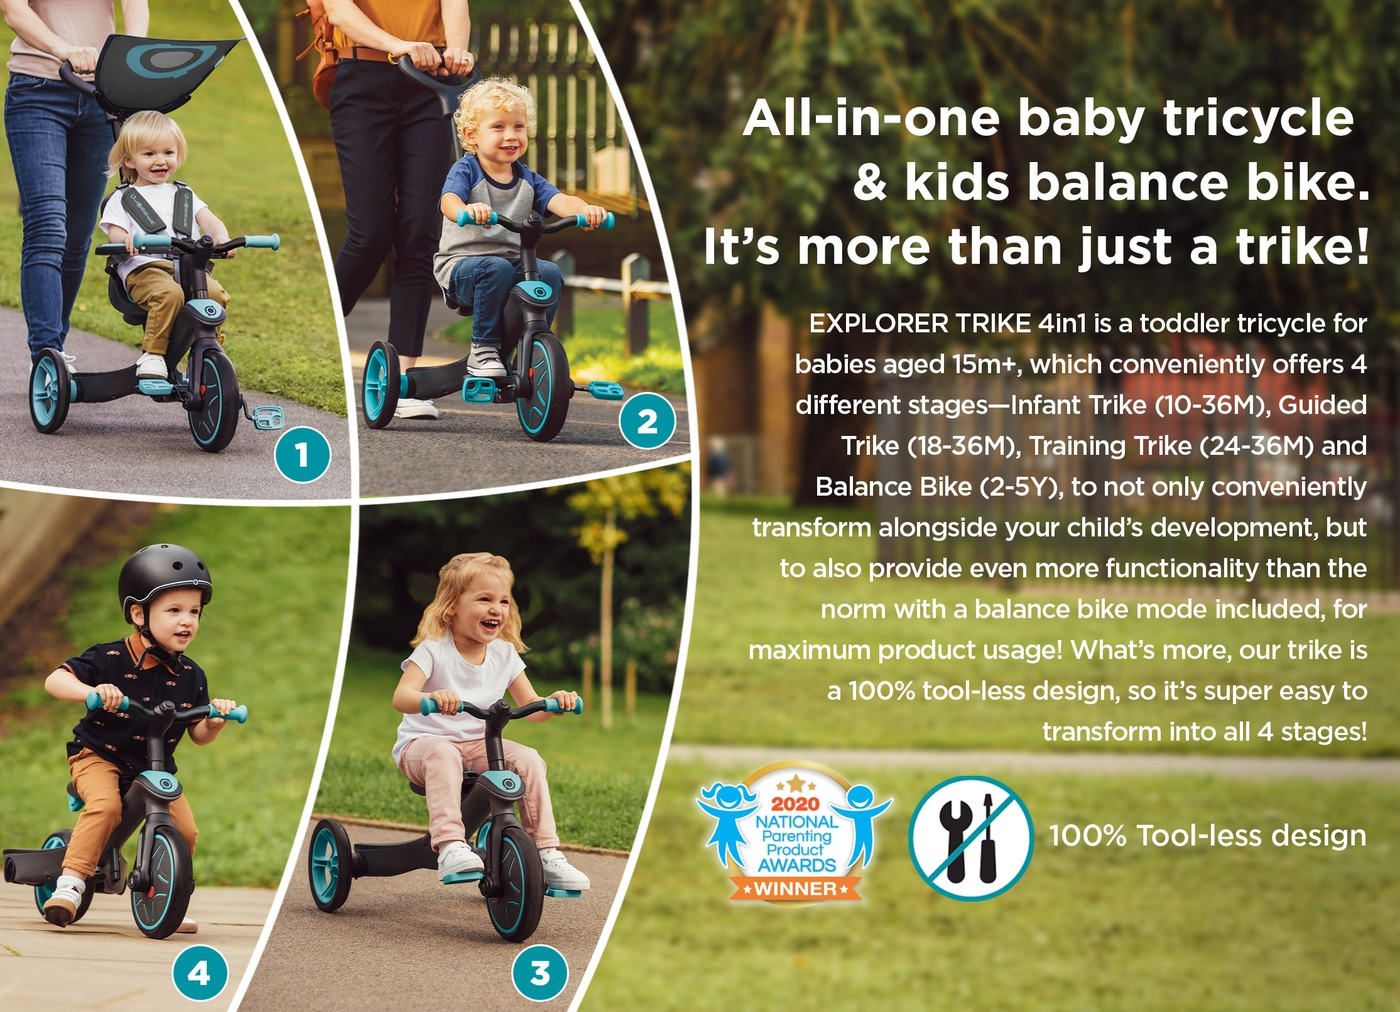 All-in-one baby tricycle & kids balance bike. It's more than just a trike!